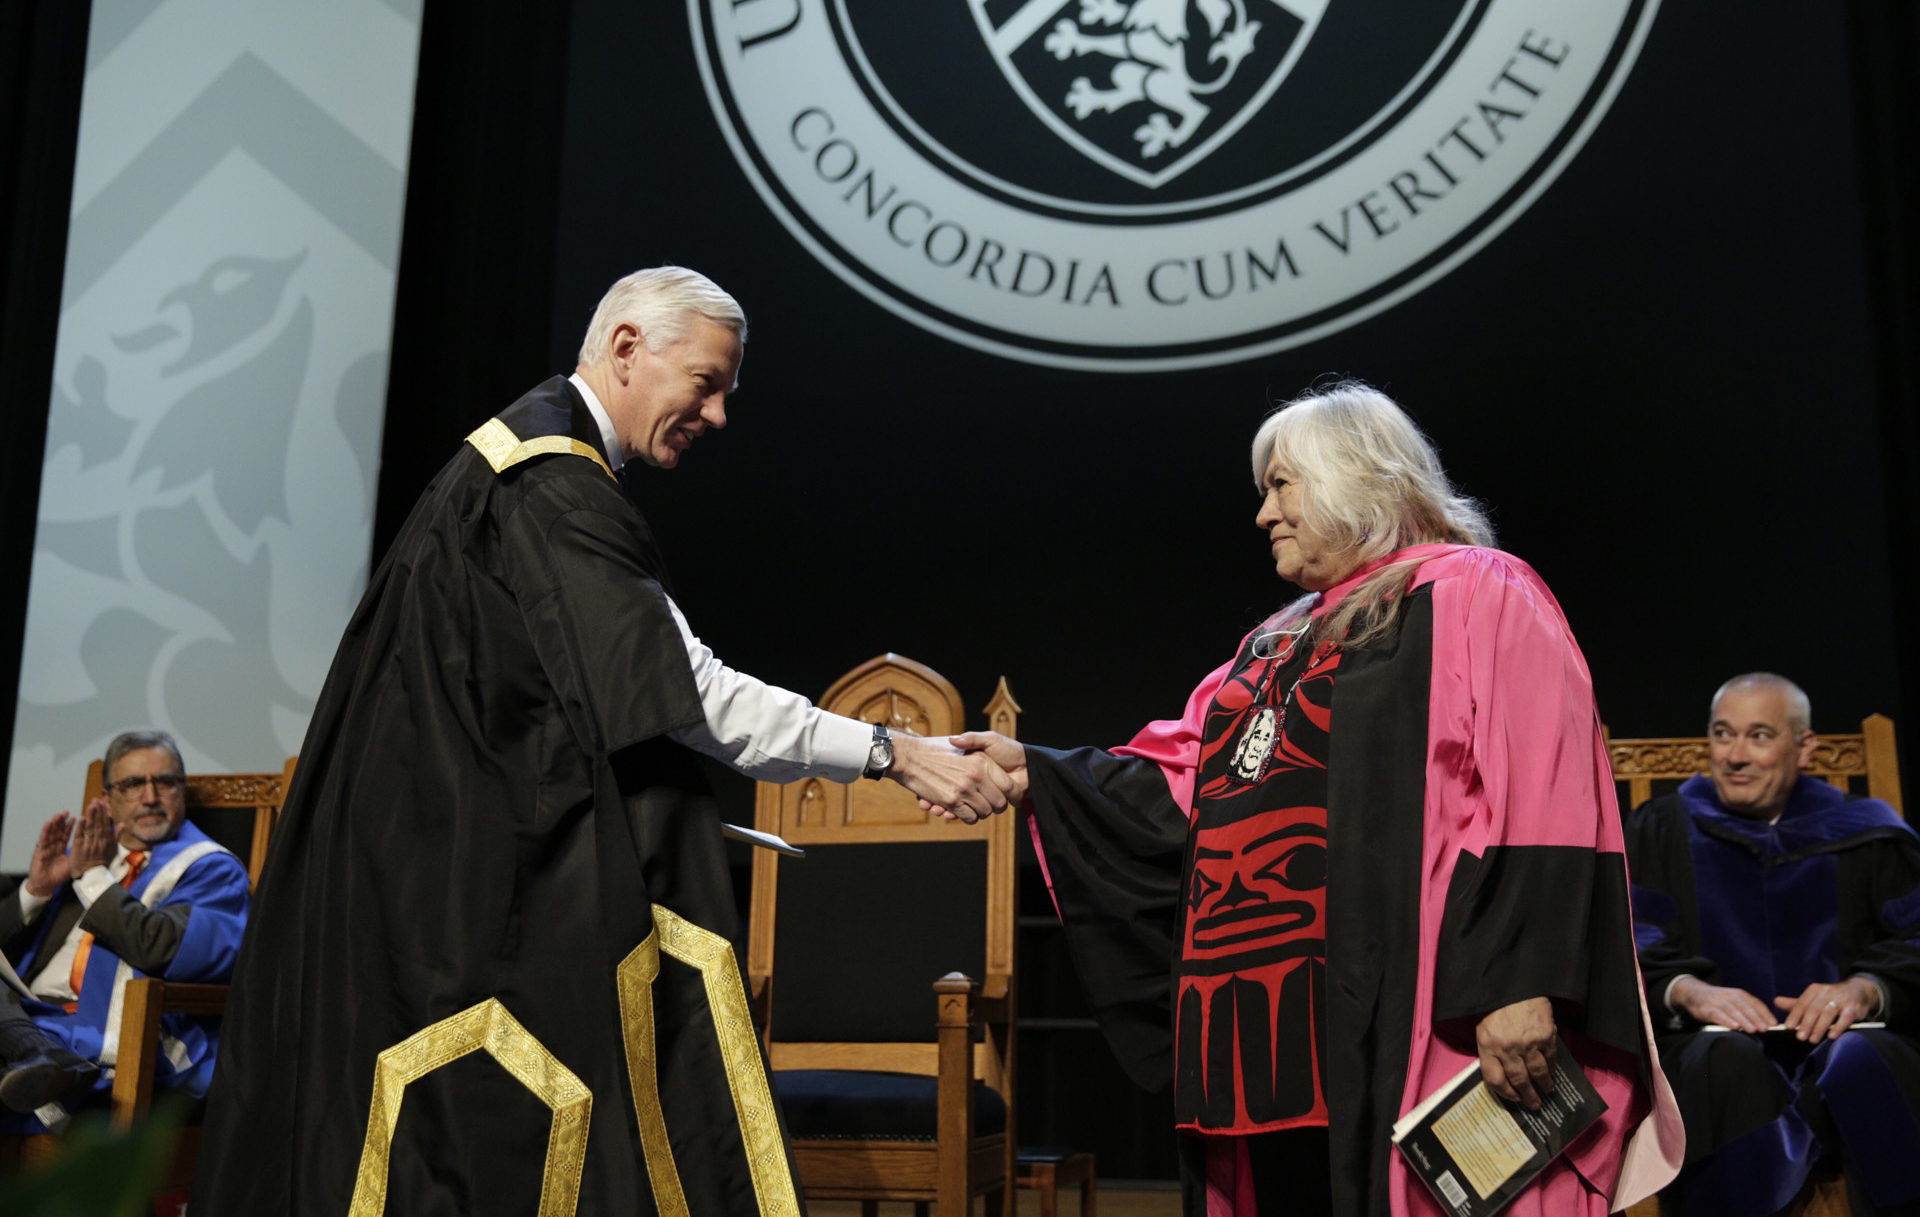 Waterloo Chancellor shaking hands with Lee Maracle at convocation ceremony